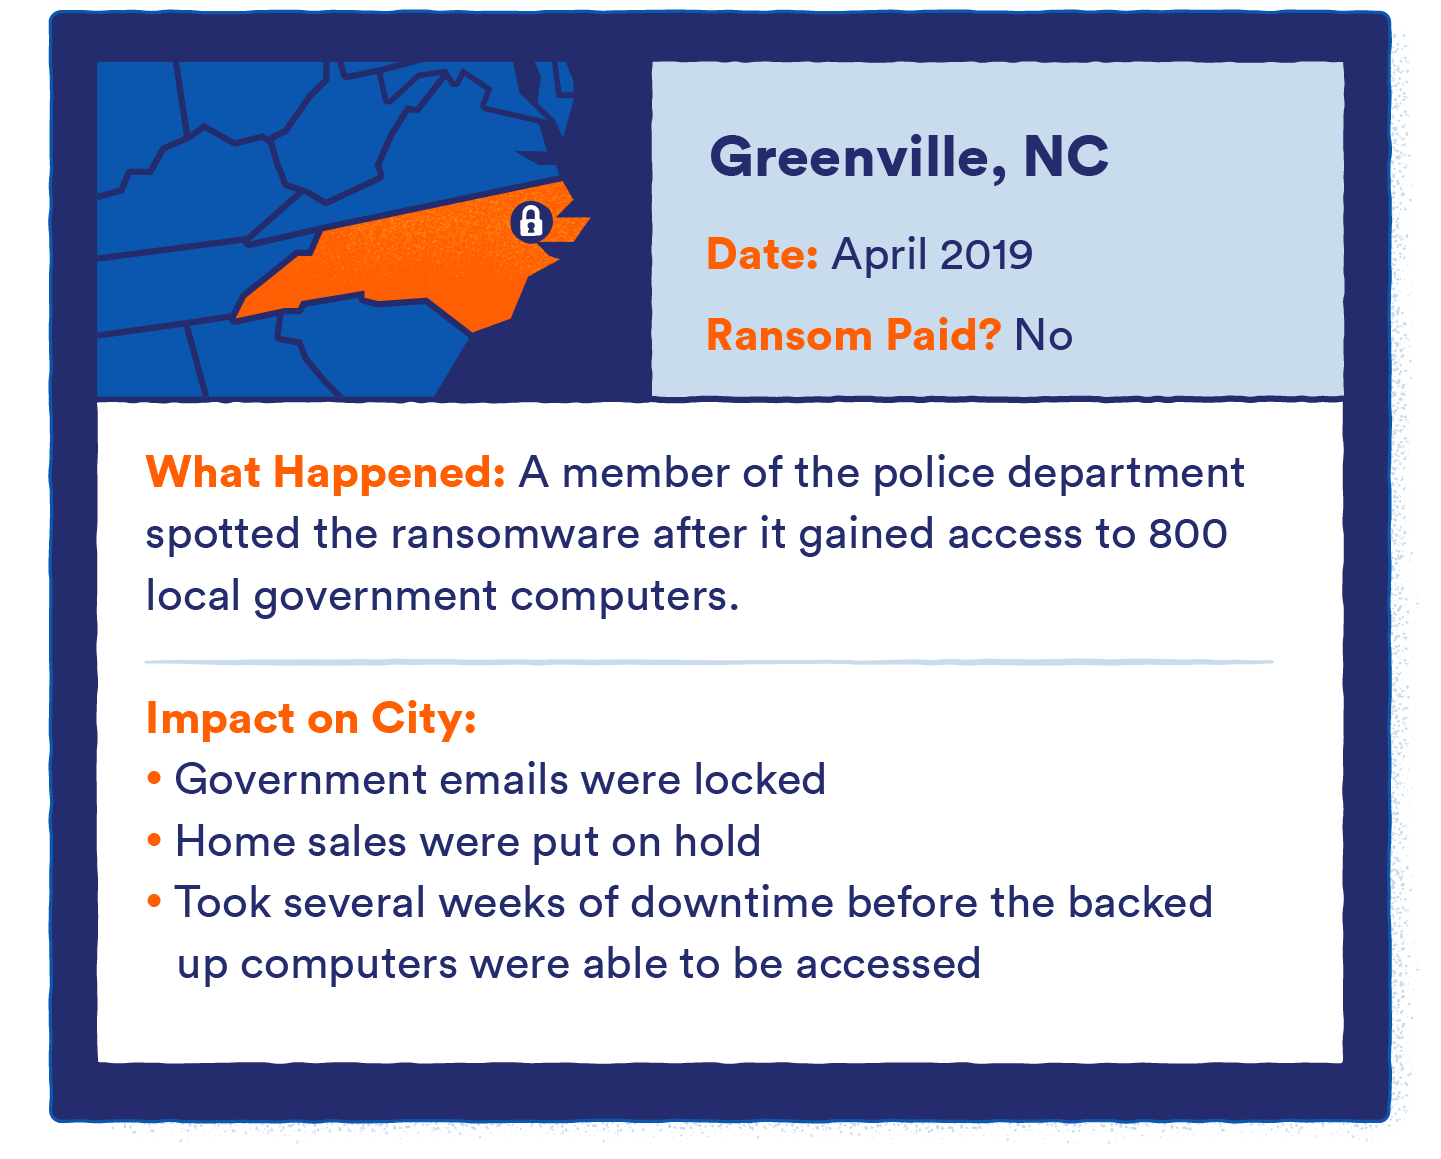 graphic that shows ransomware in greenville